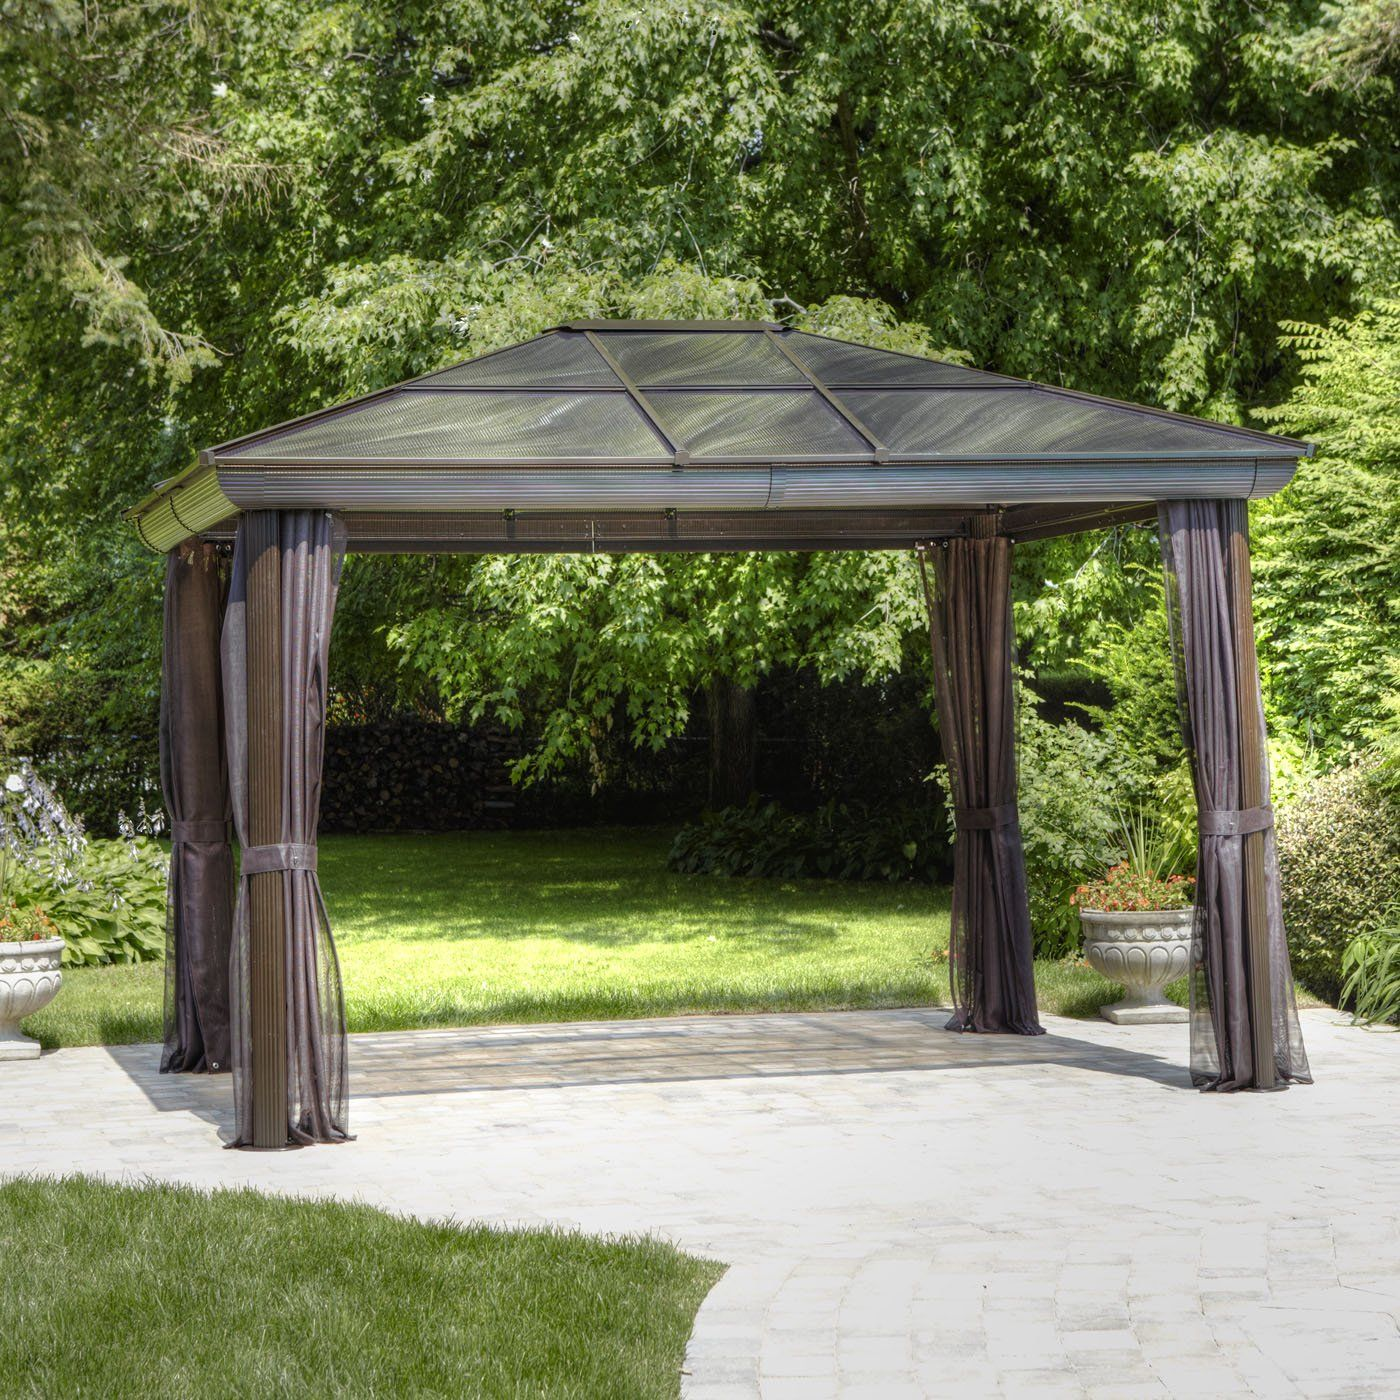 Shop Gazebo Penguin 12 ft x 10 ft All Seasons Gazebo Actual